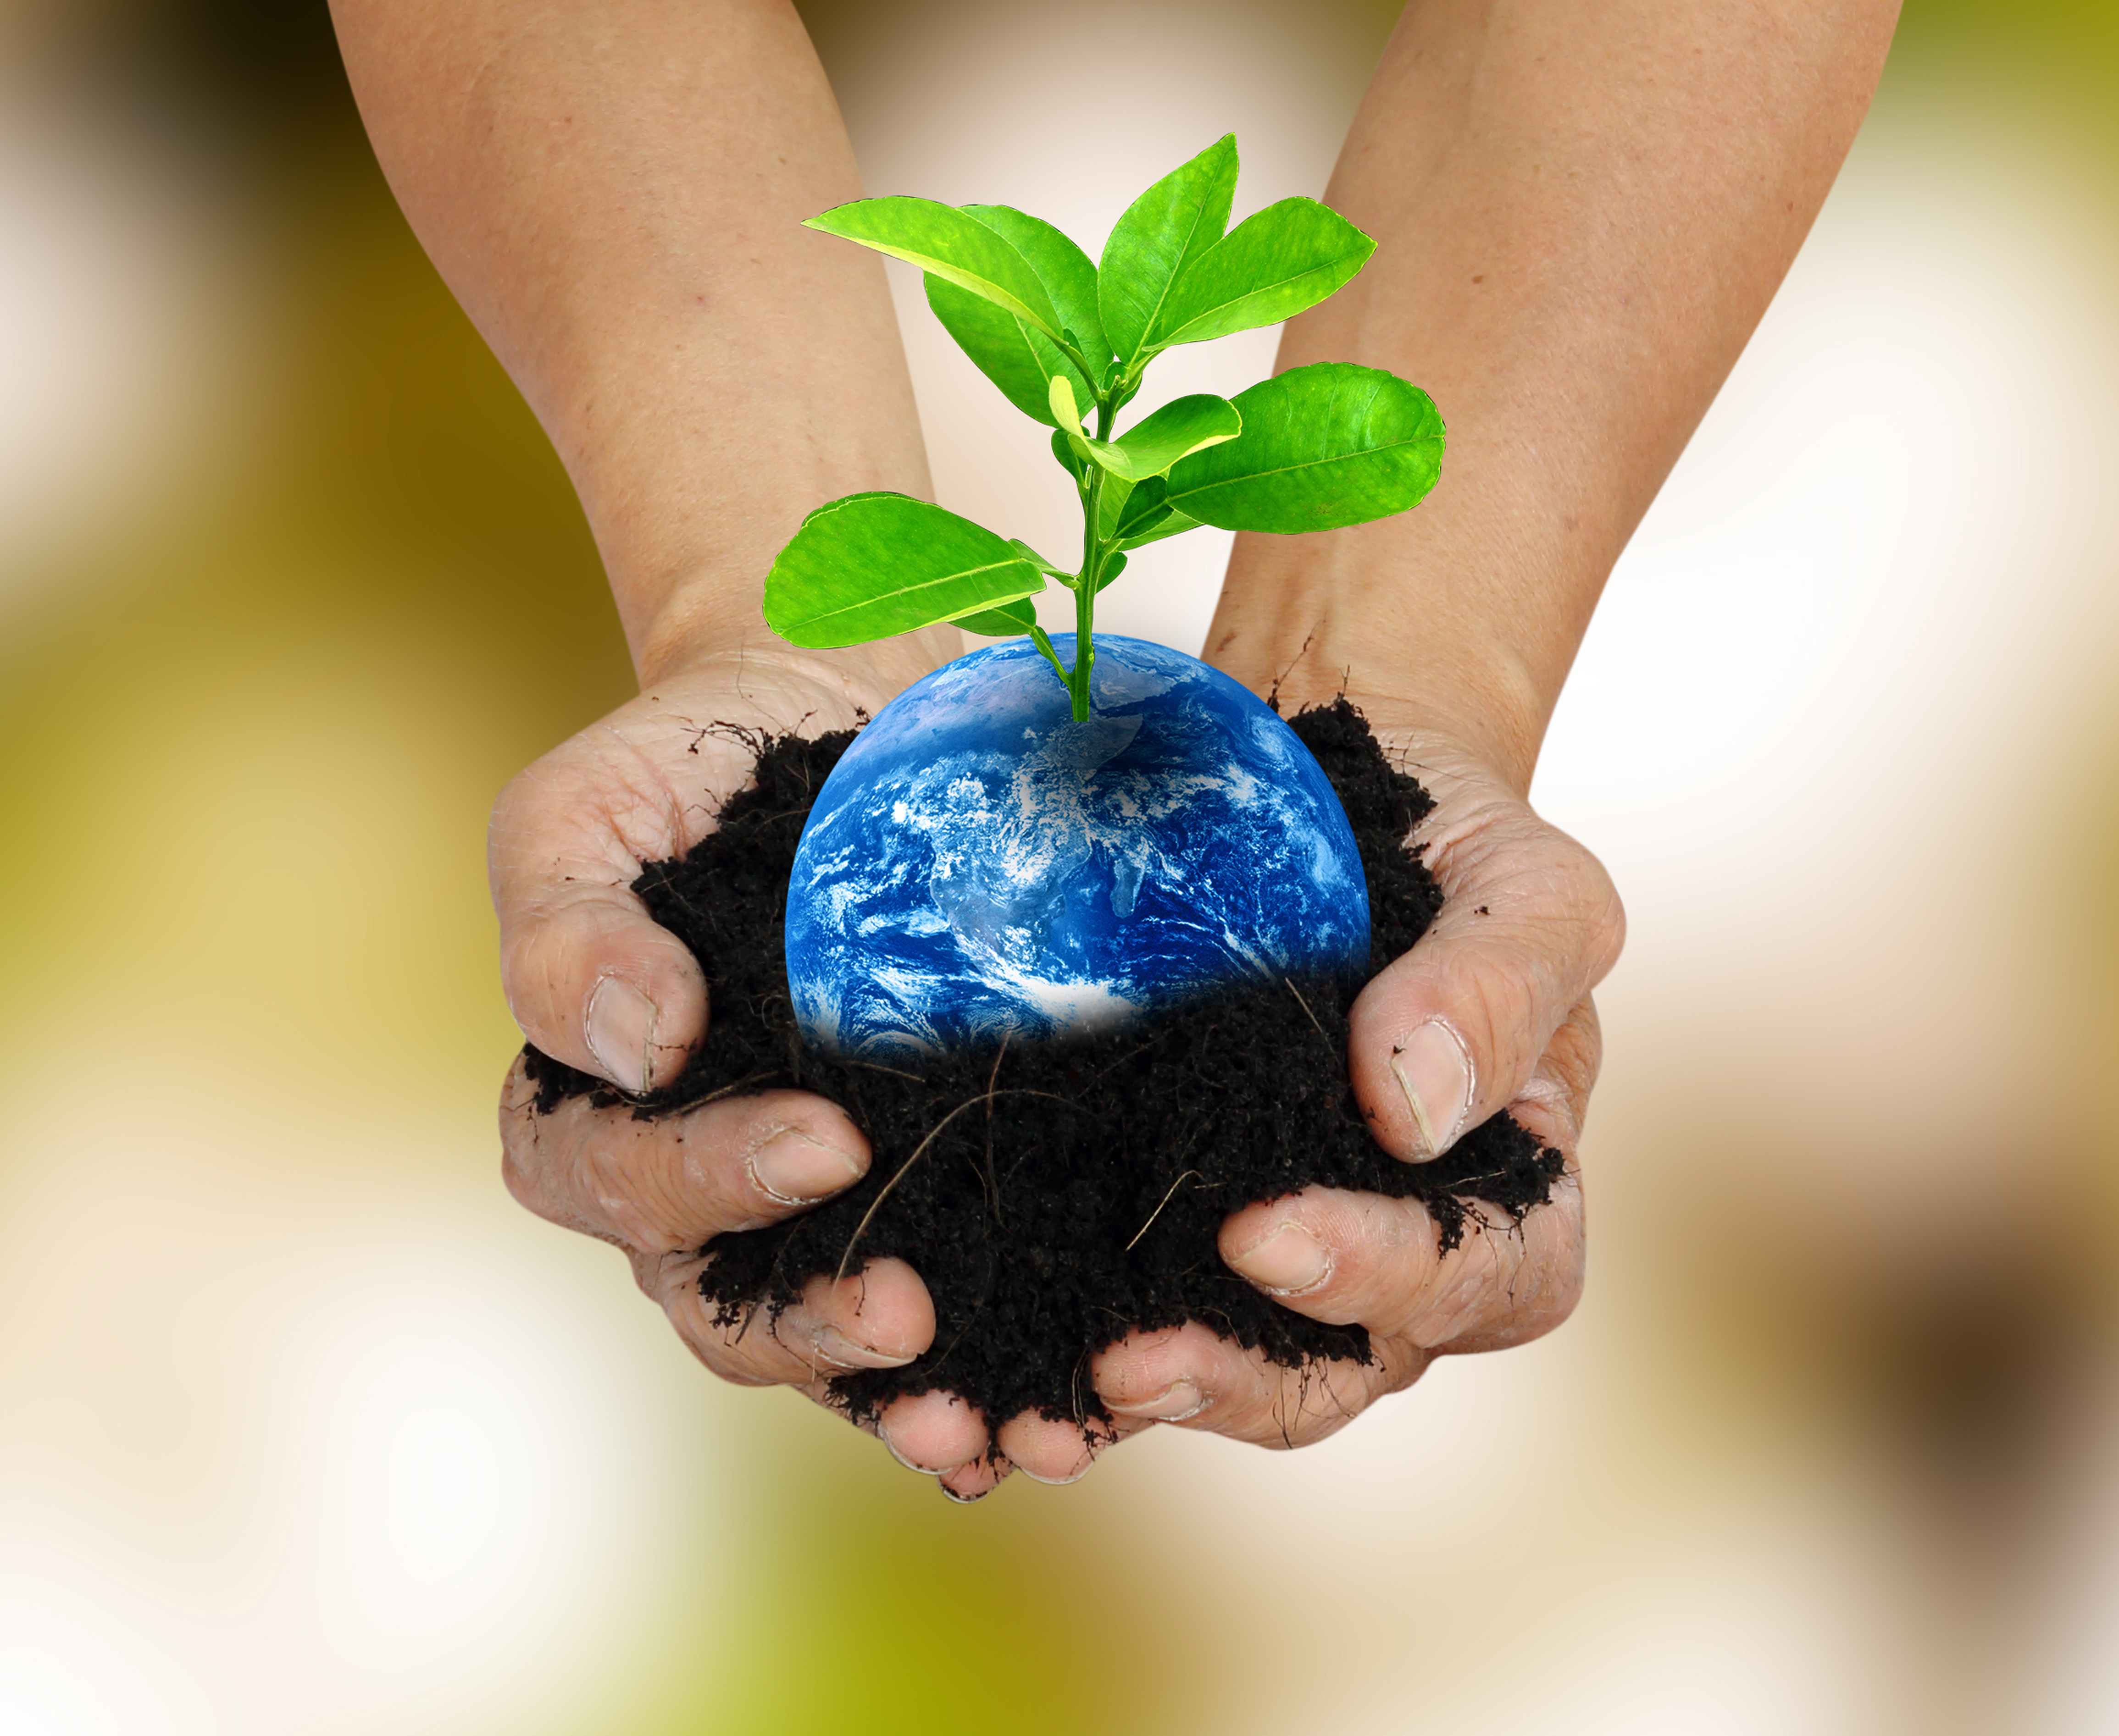 Hands holding plant & Earth shutterstock_273892445 - centered crop